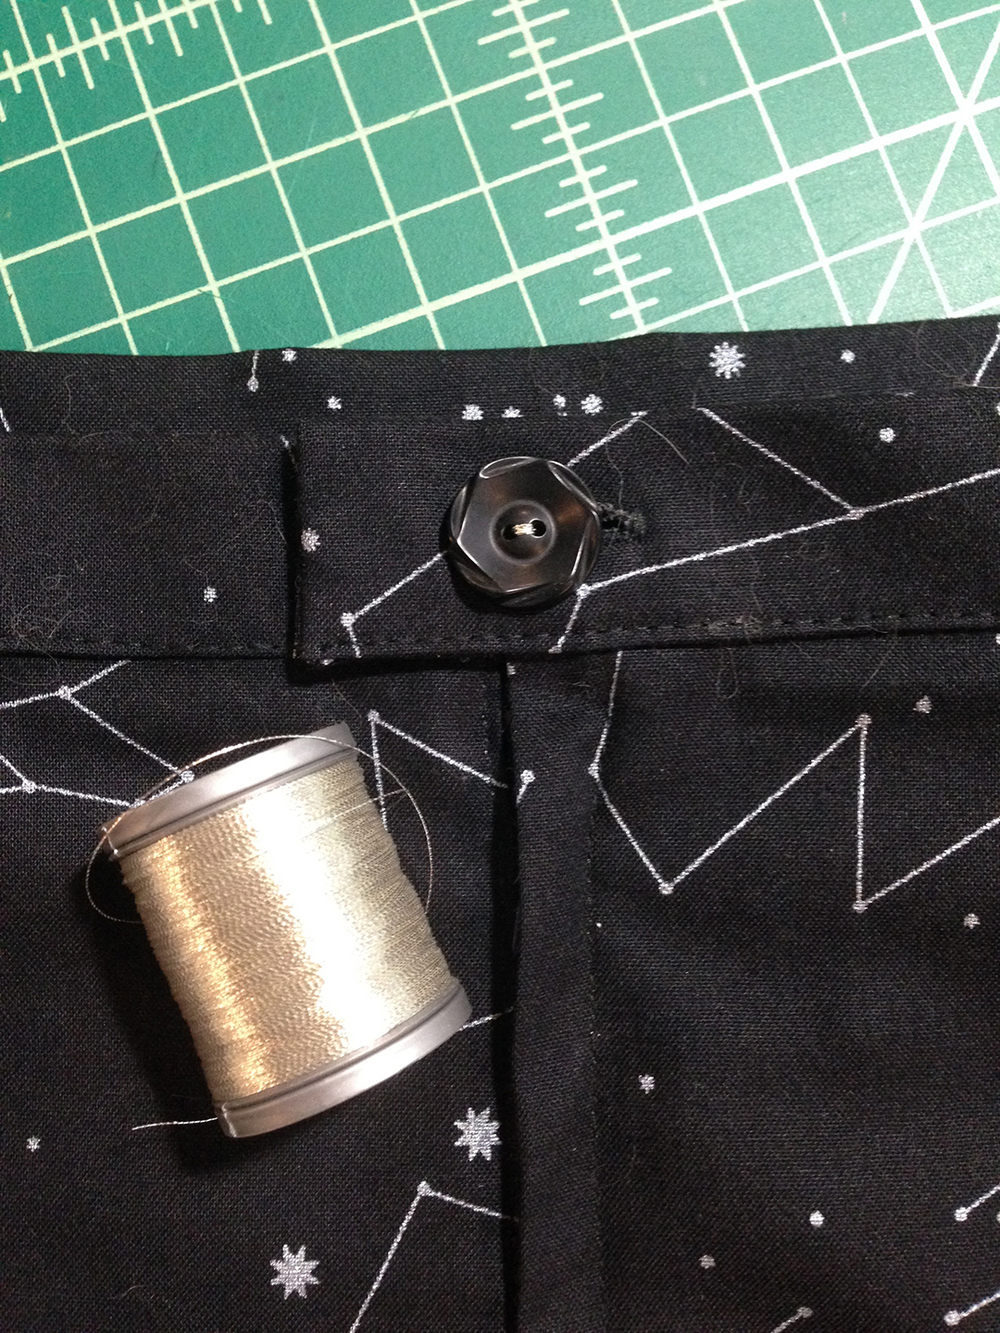 I used silver thread to sew on the waistline button, just for fun. I thought about embroidering some of the constellations too, but that seemed like overkill.